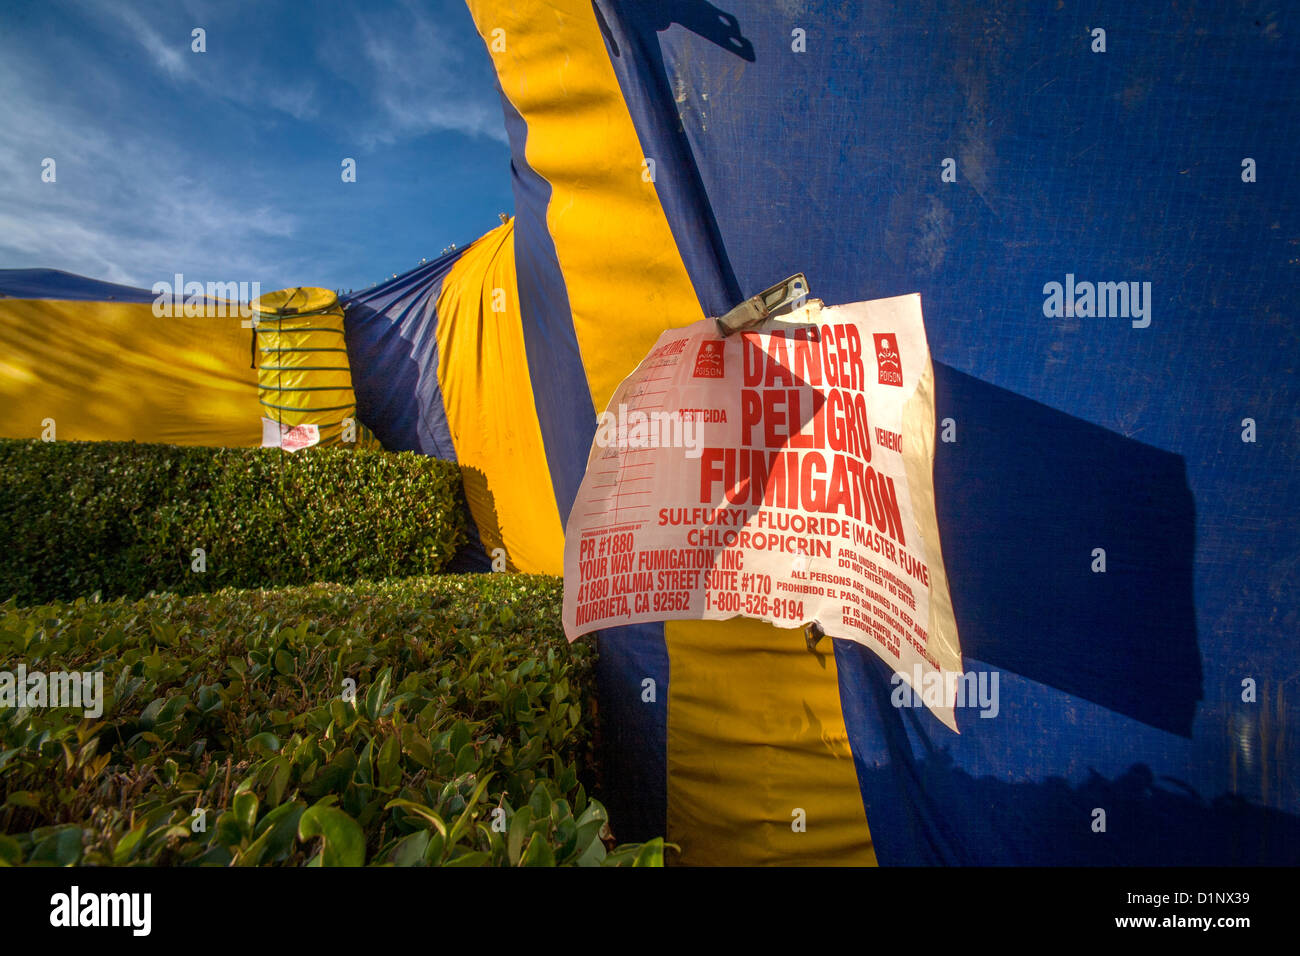 Sign outside a gas-proof tent warns against dangers sulfur fluoride chloropicrin poison gas during fumigation to - Stock Image